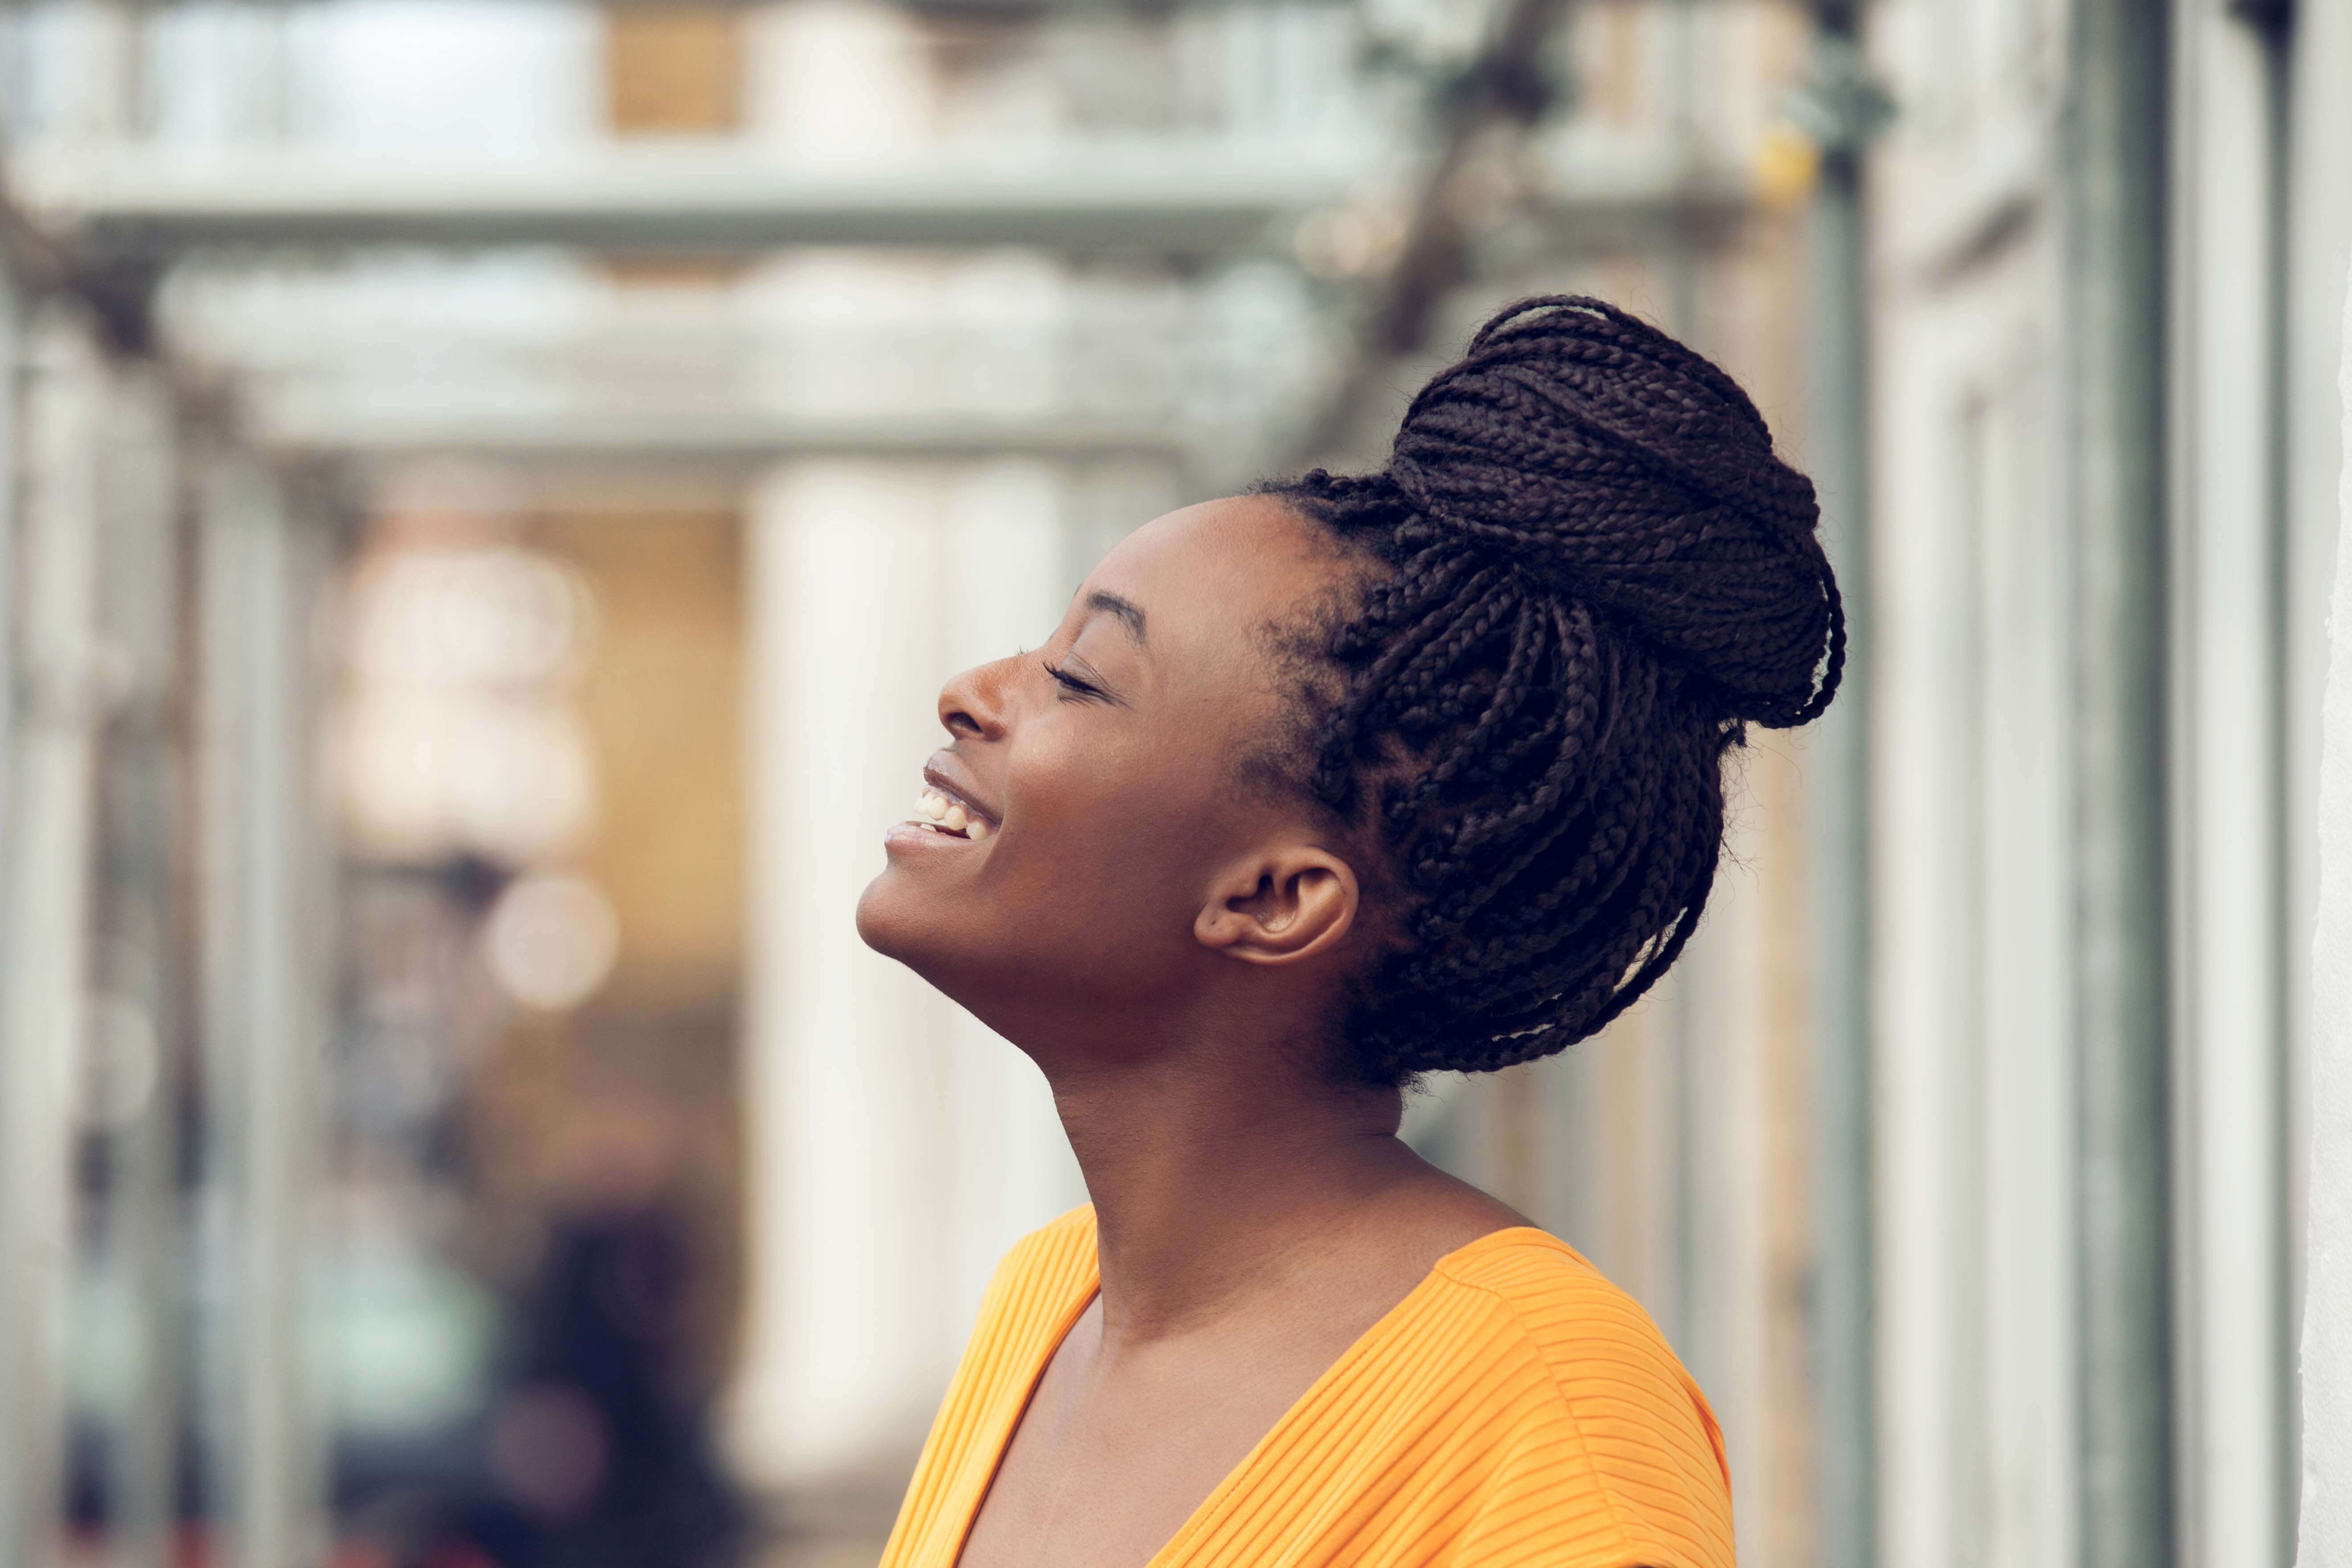 hairstyles for box braids: laughing young black woman with box braids in a high bun